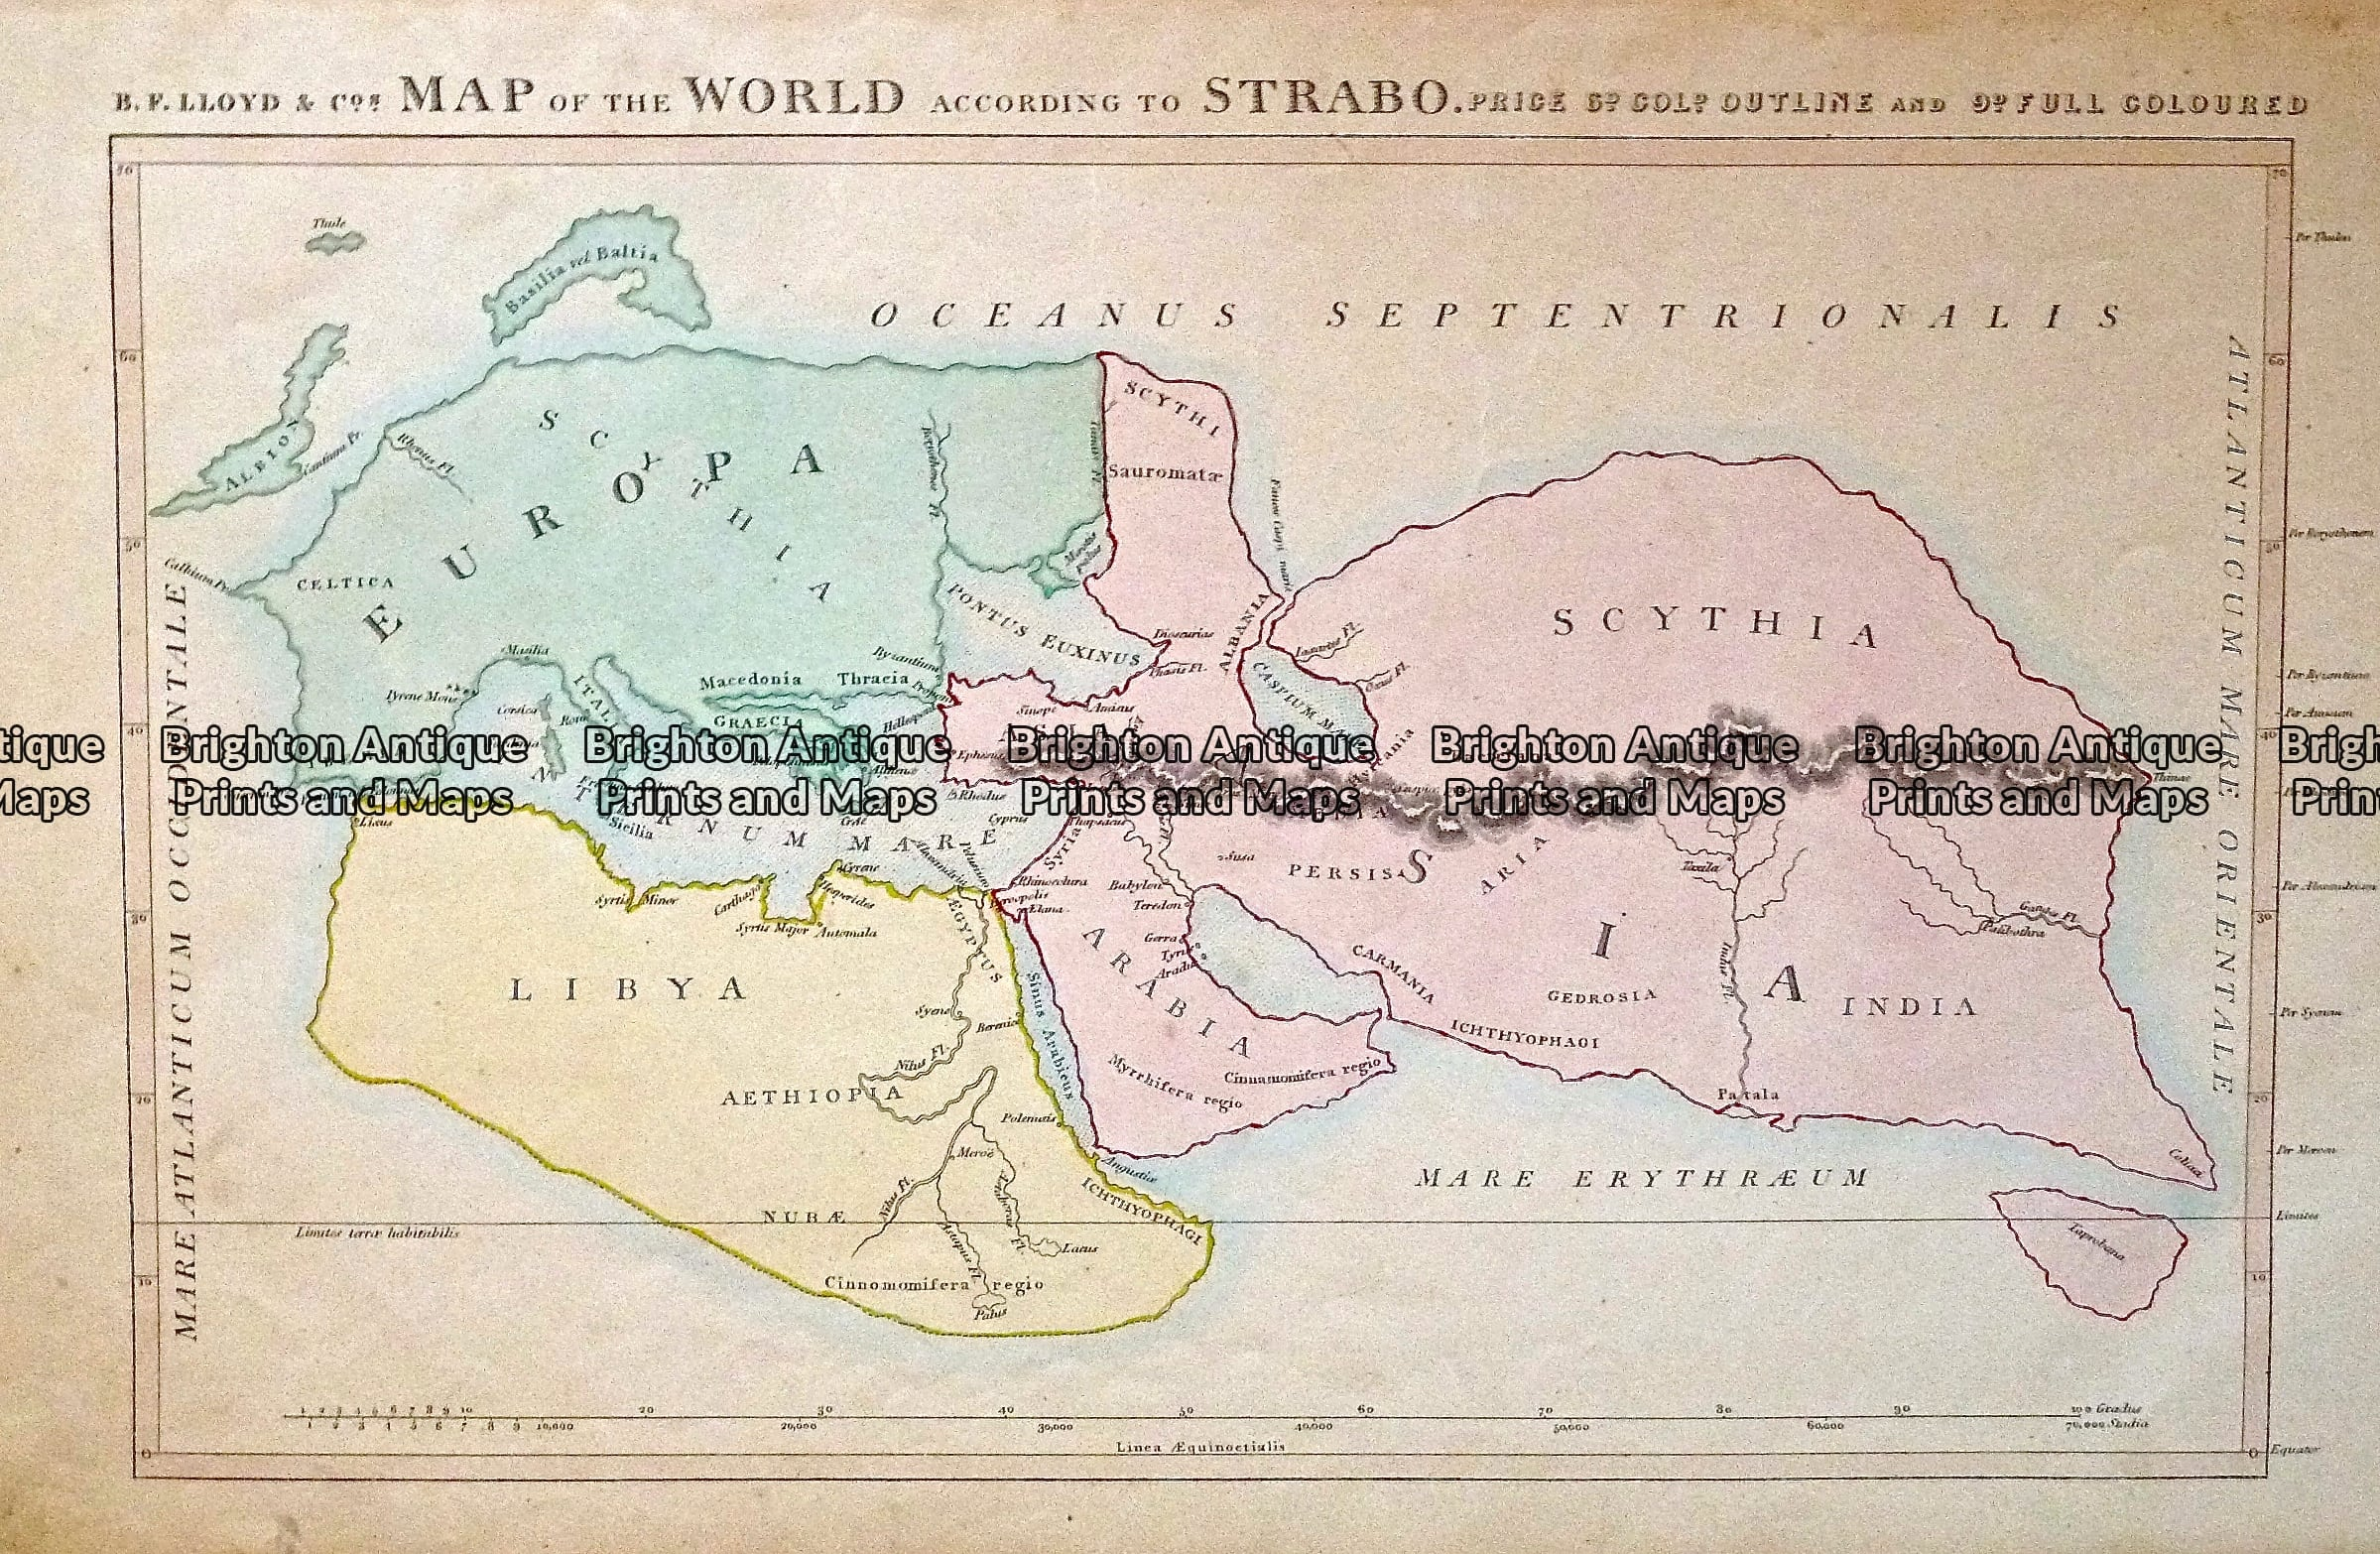 Antique Map 232 426 World According To Strabo By Lloyd C 1848